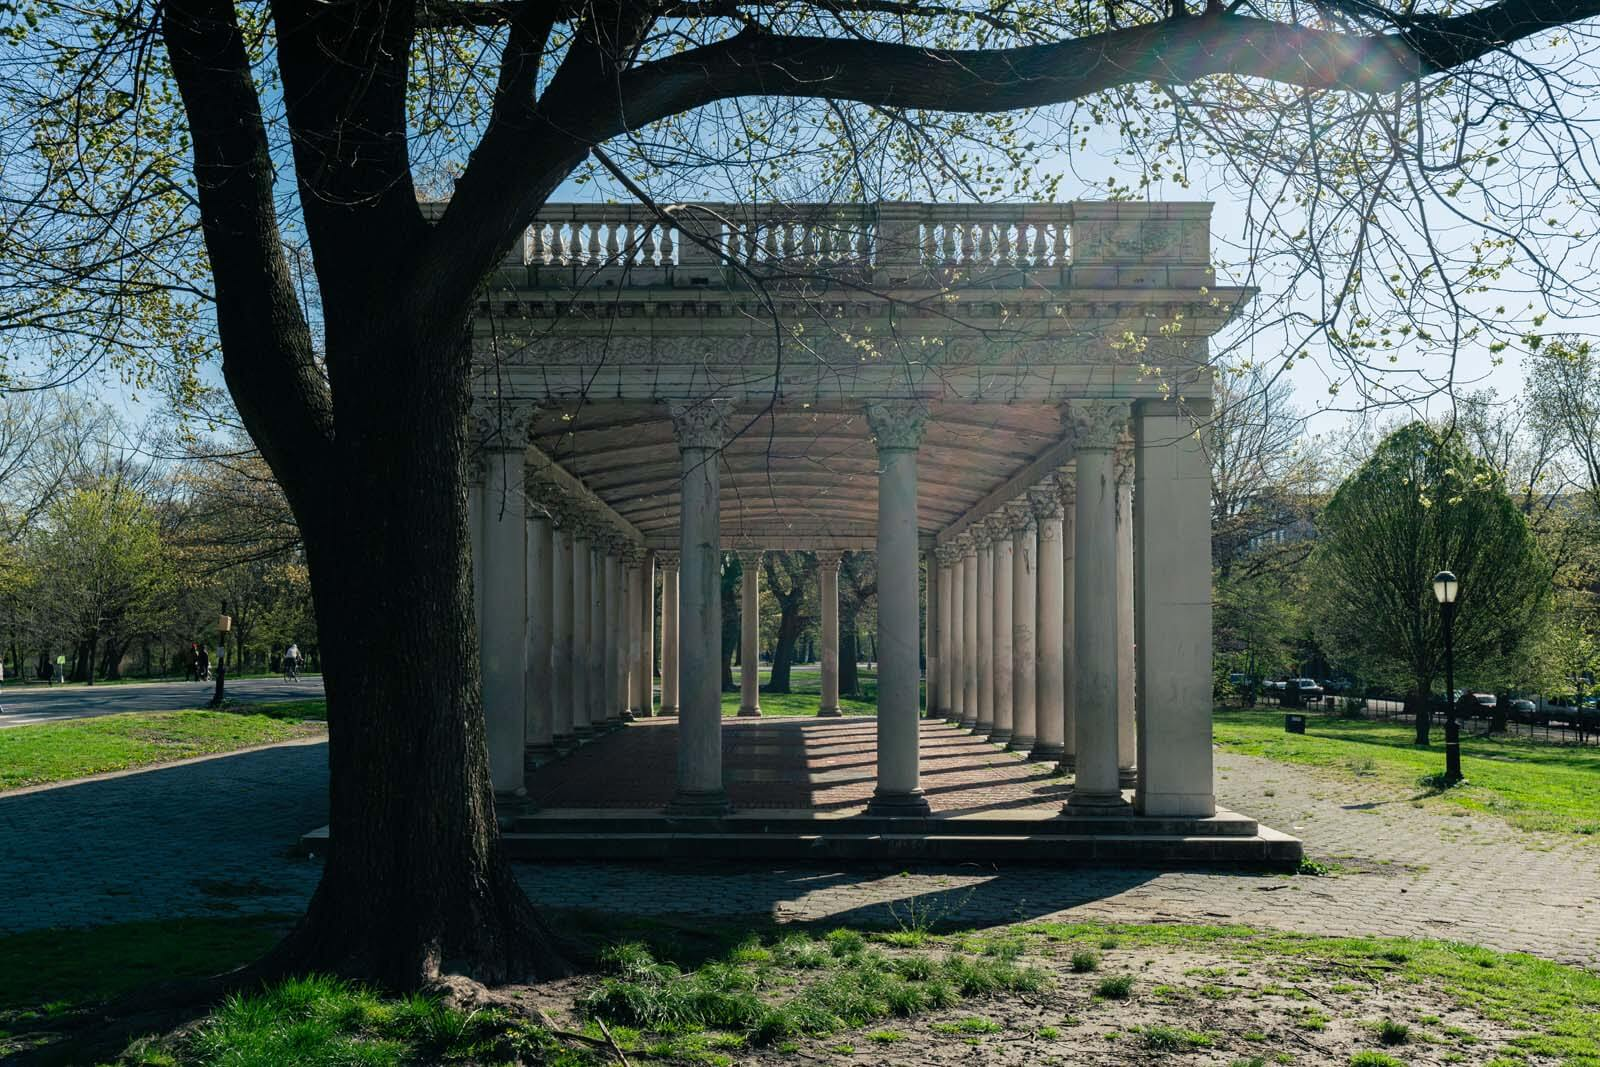 The empty peristyle shelter in Prospect Park